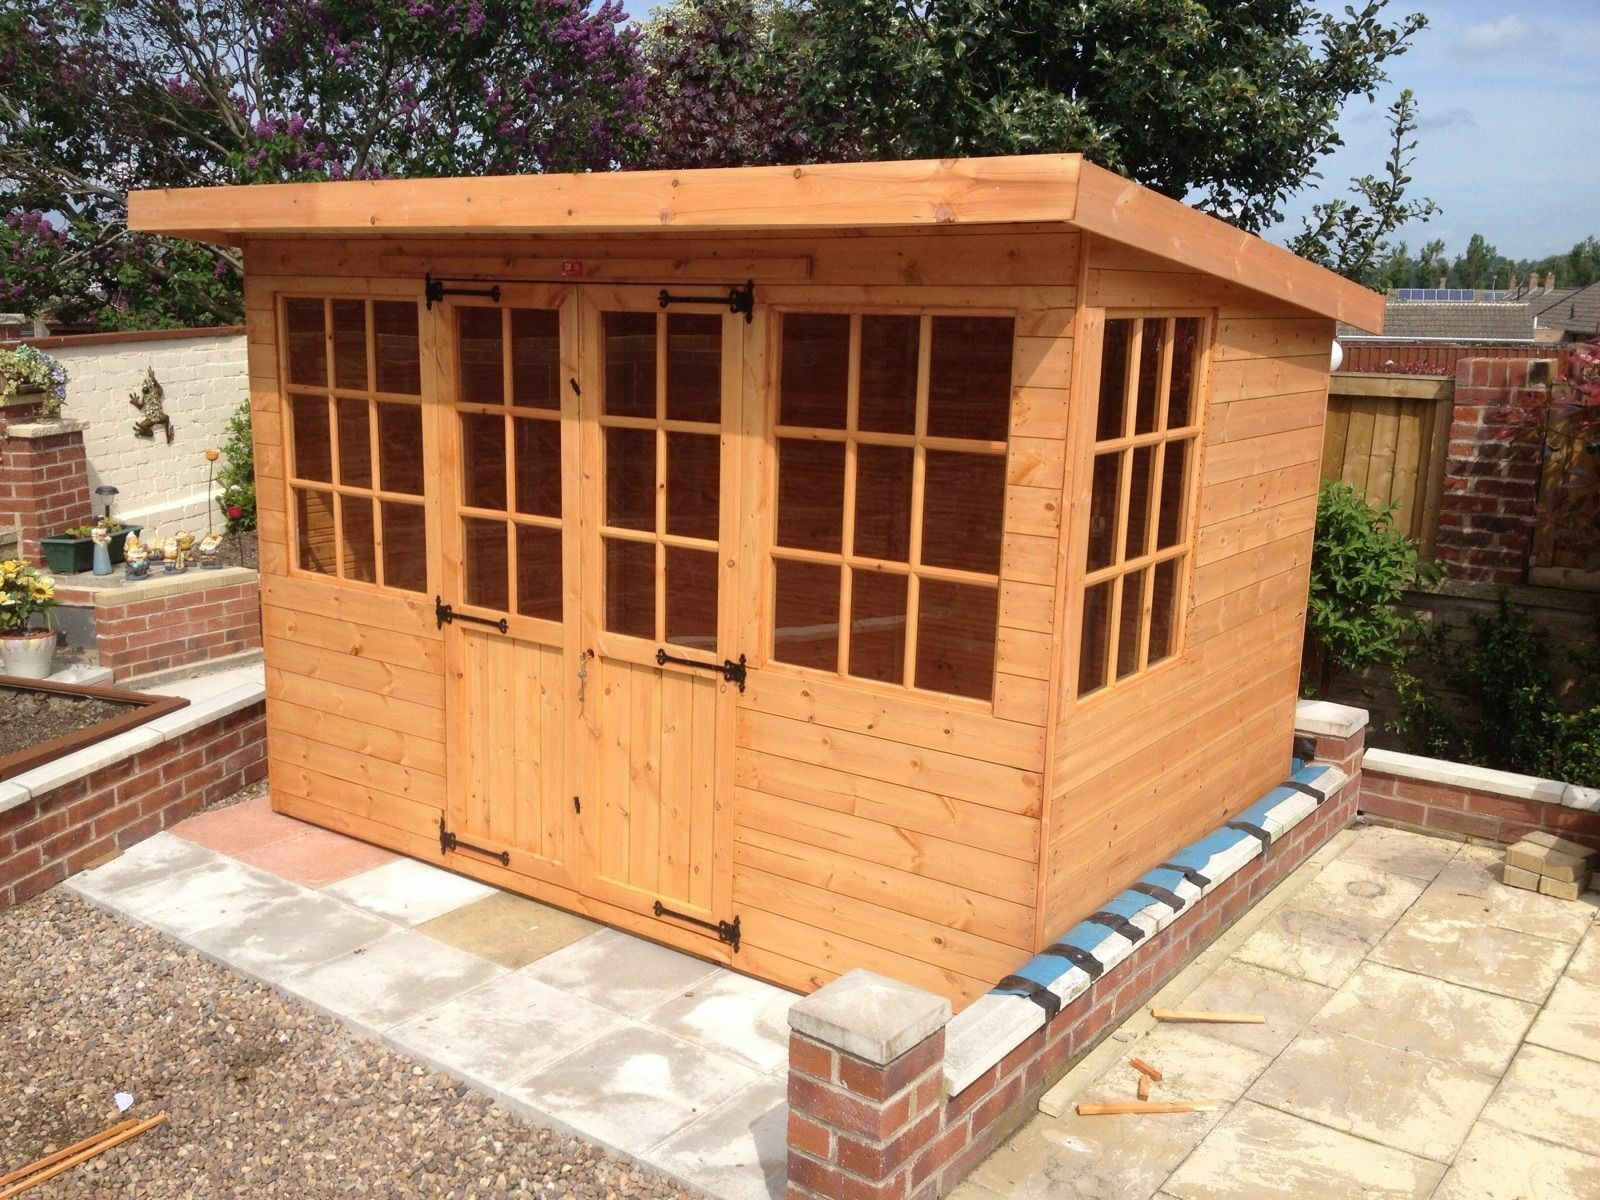 10x8 Wooden Pent Summerhouse Georgian Style Fully Tongue And Groove Garden Storage Shed Mini Shed Plastic Storage Sheds